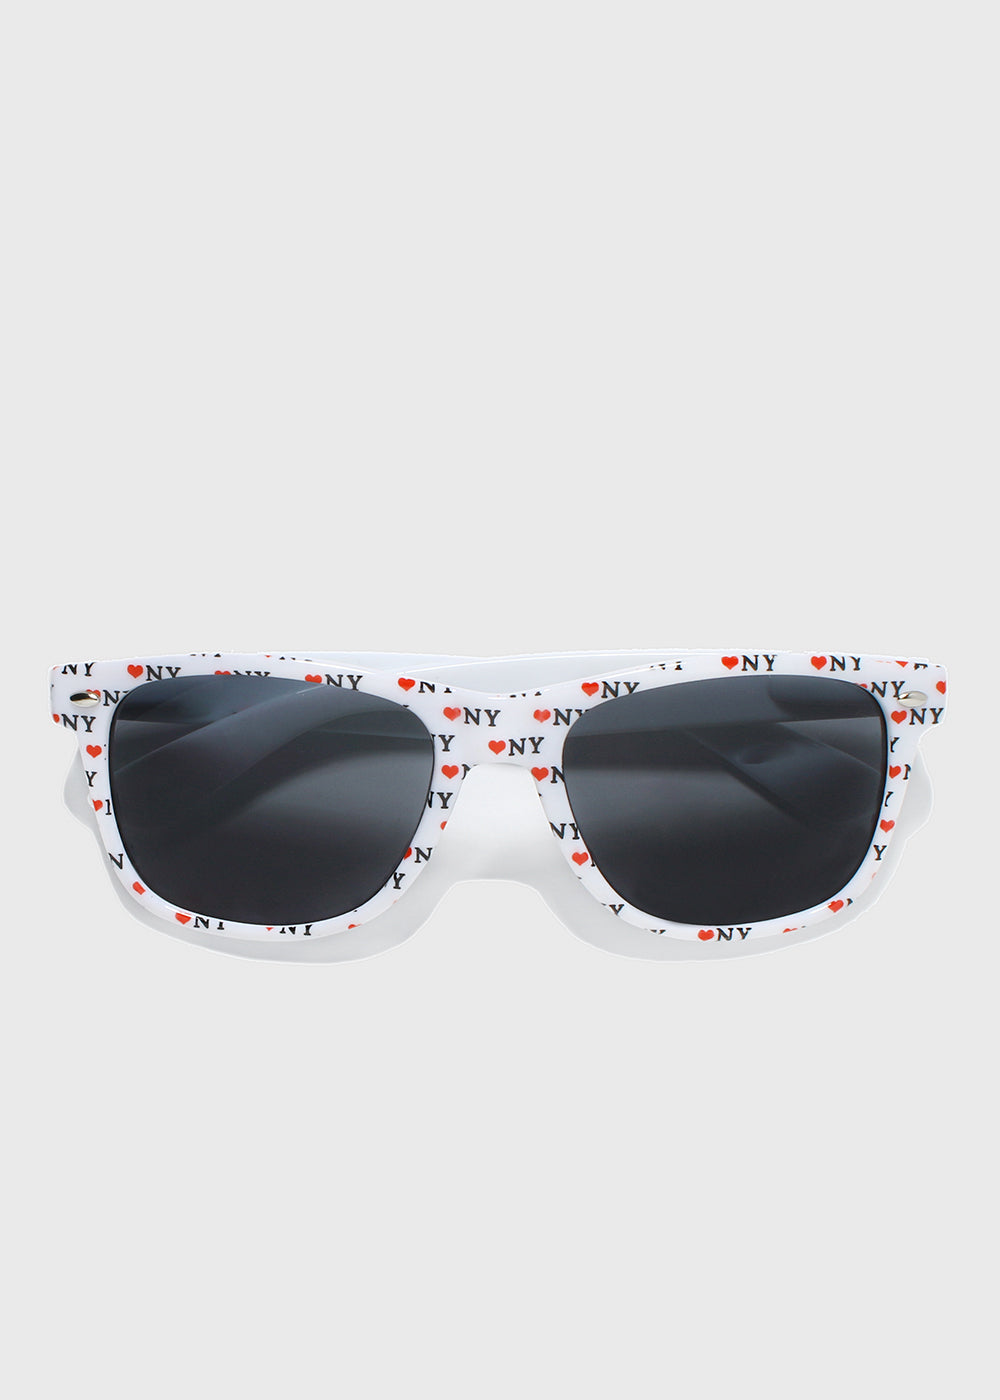 NY Print Sunglasses- White